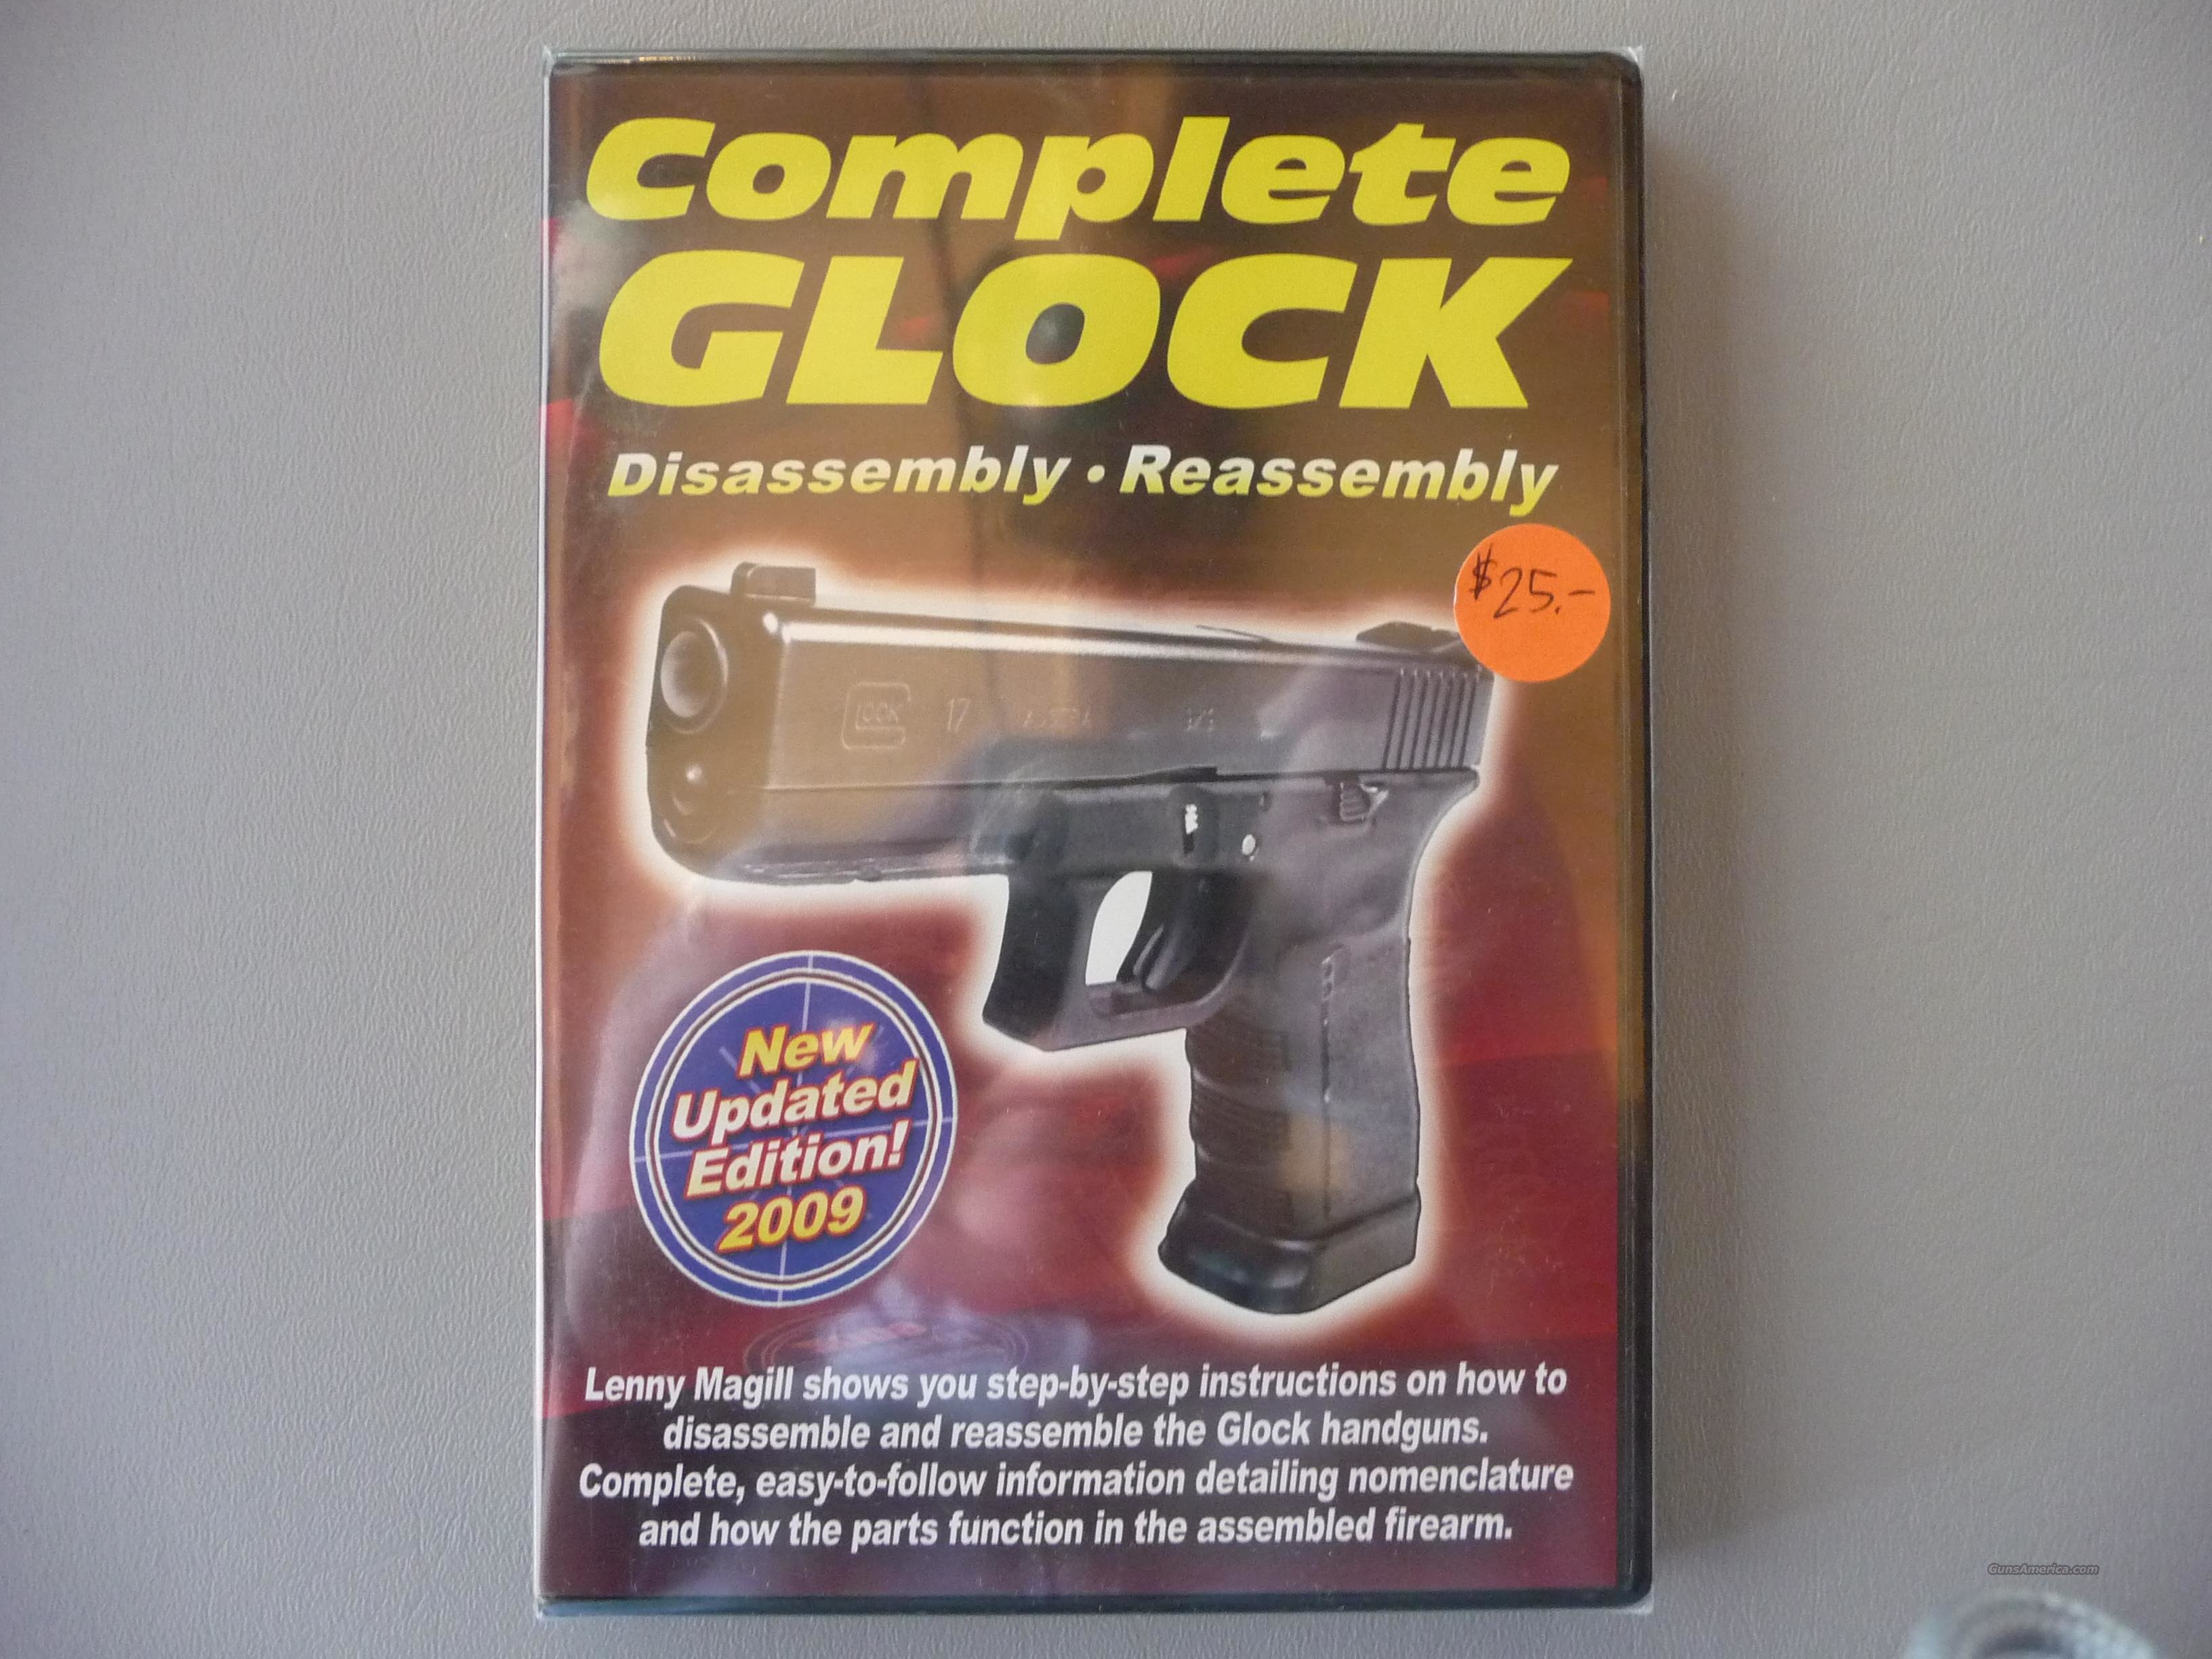 "NEW DVD ""Complete Glock Disassembly - Assembly"" by Lenny Magill  Non-Guns > Educational Tapes/Courses"